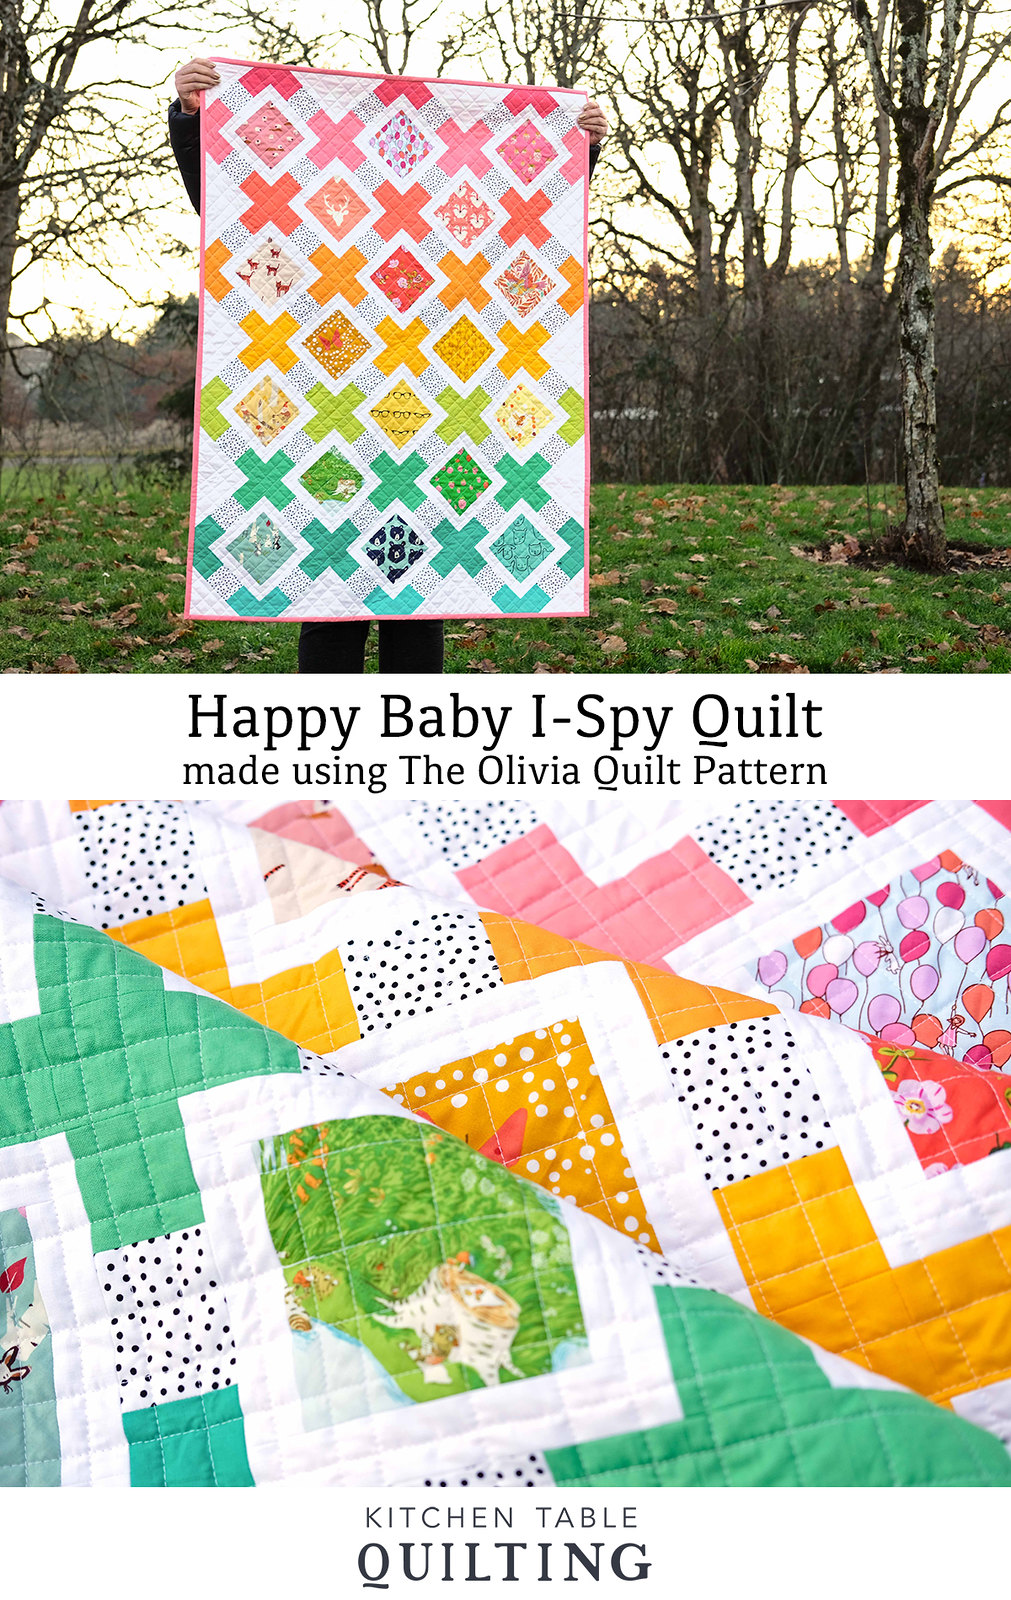 Happy Baby I-Spy Olivia Quilt - Kitchen Table Quilting